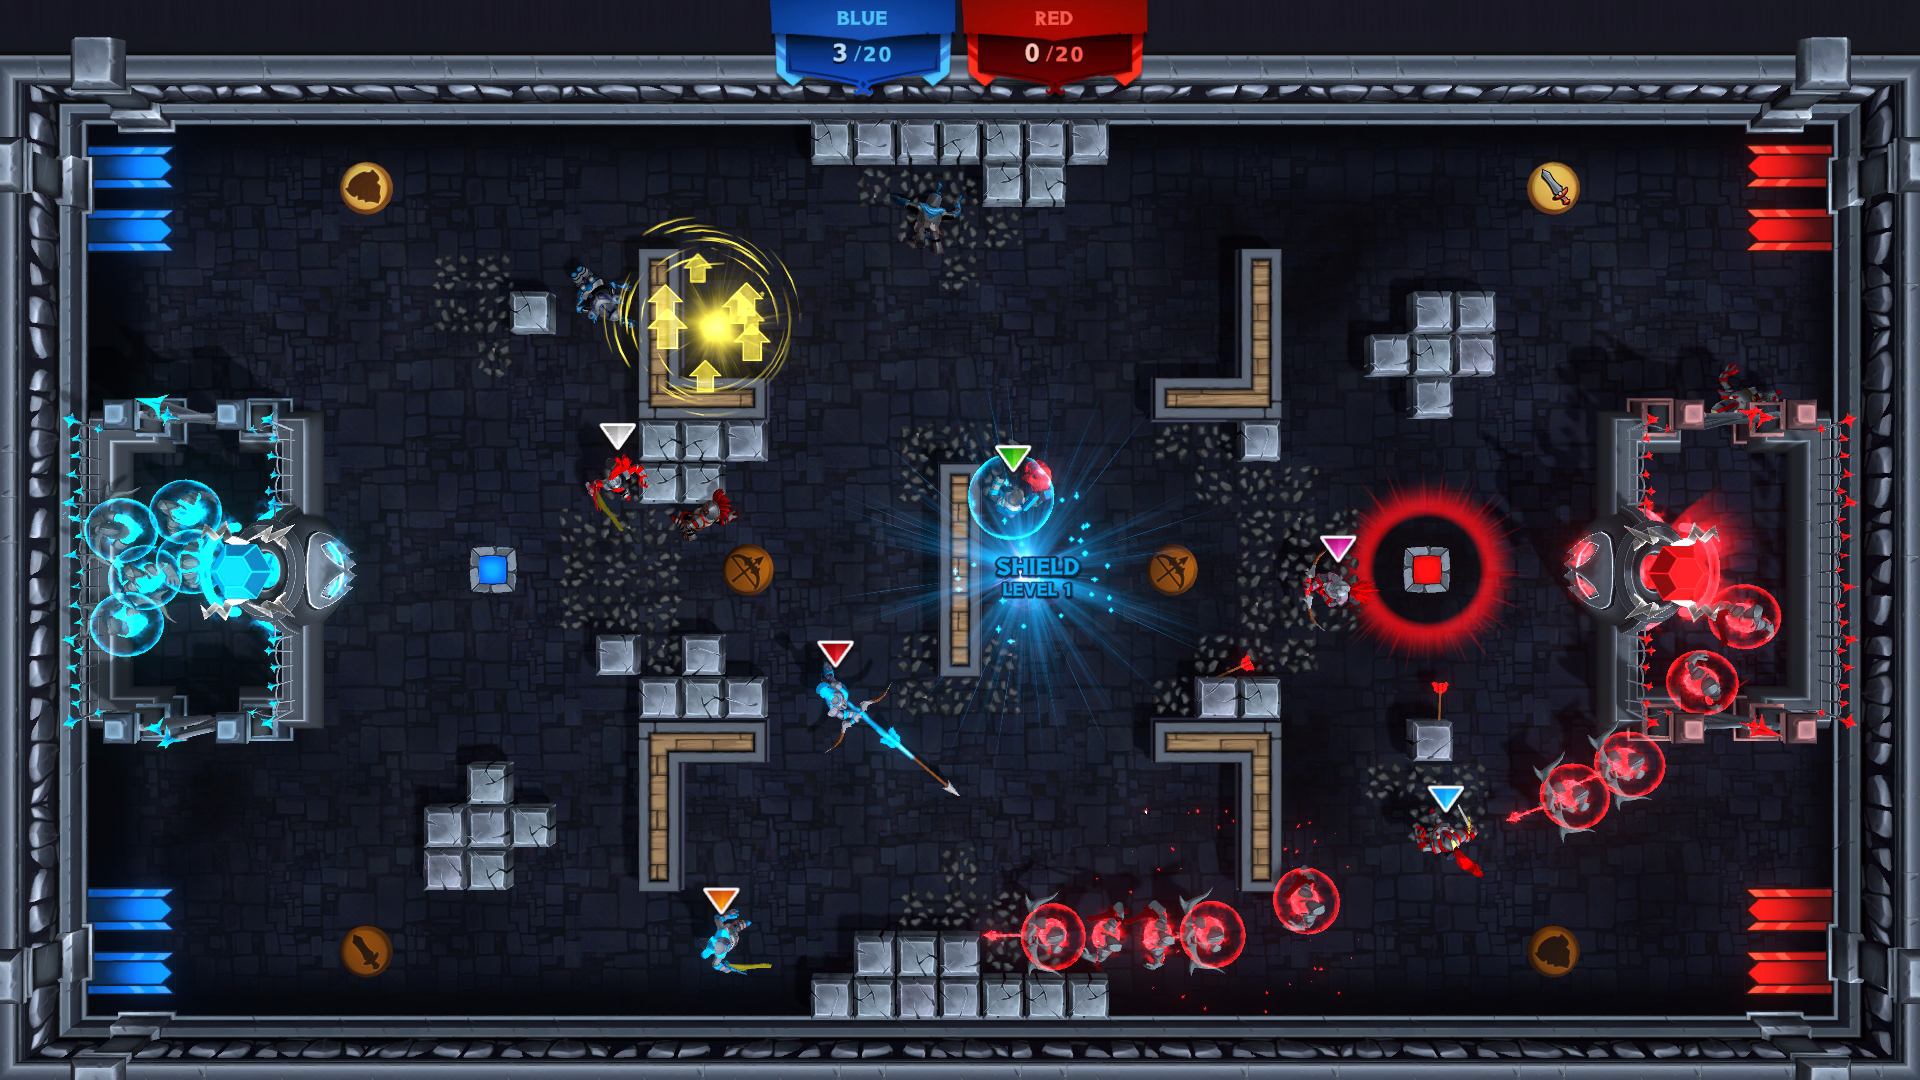 knight squad 2 screenshot - protect your minions